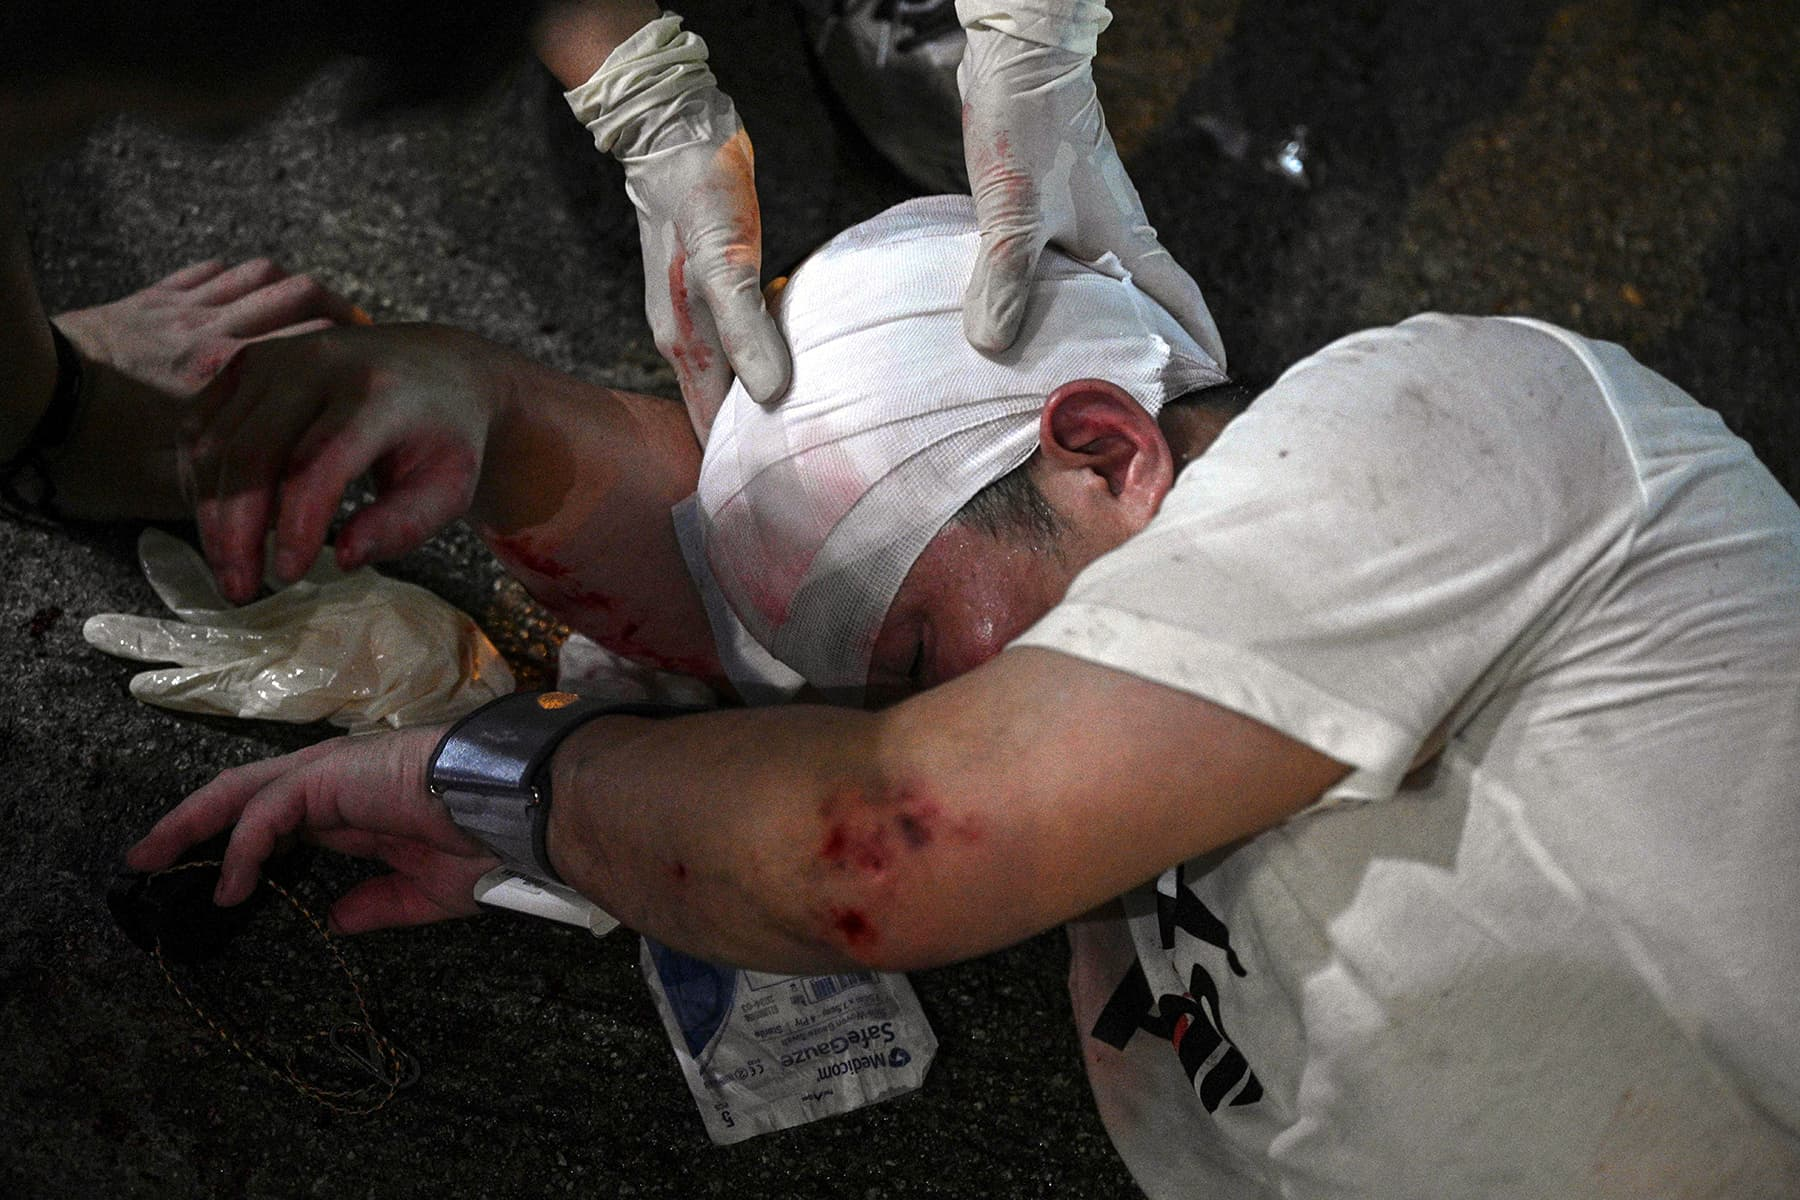 A wounded man is helped by volunteer medics after a street brawl in Fortress Hill in Hong Kong on Sunday. — AFP